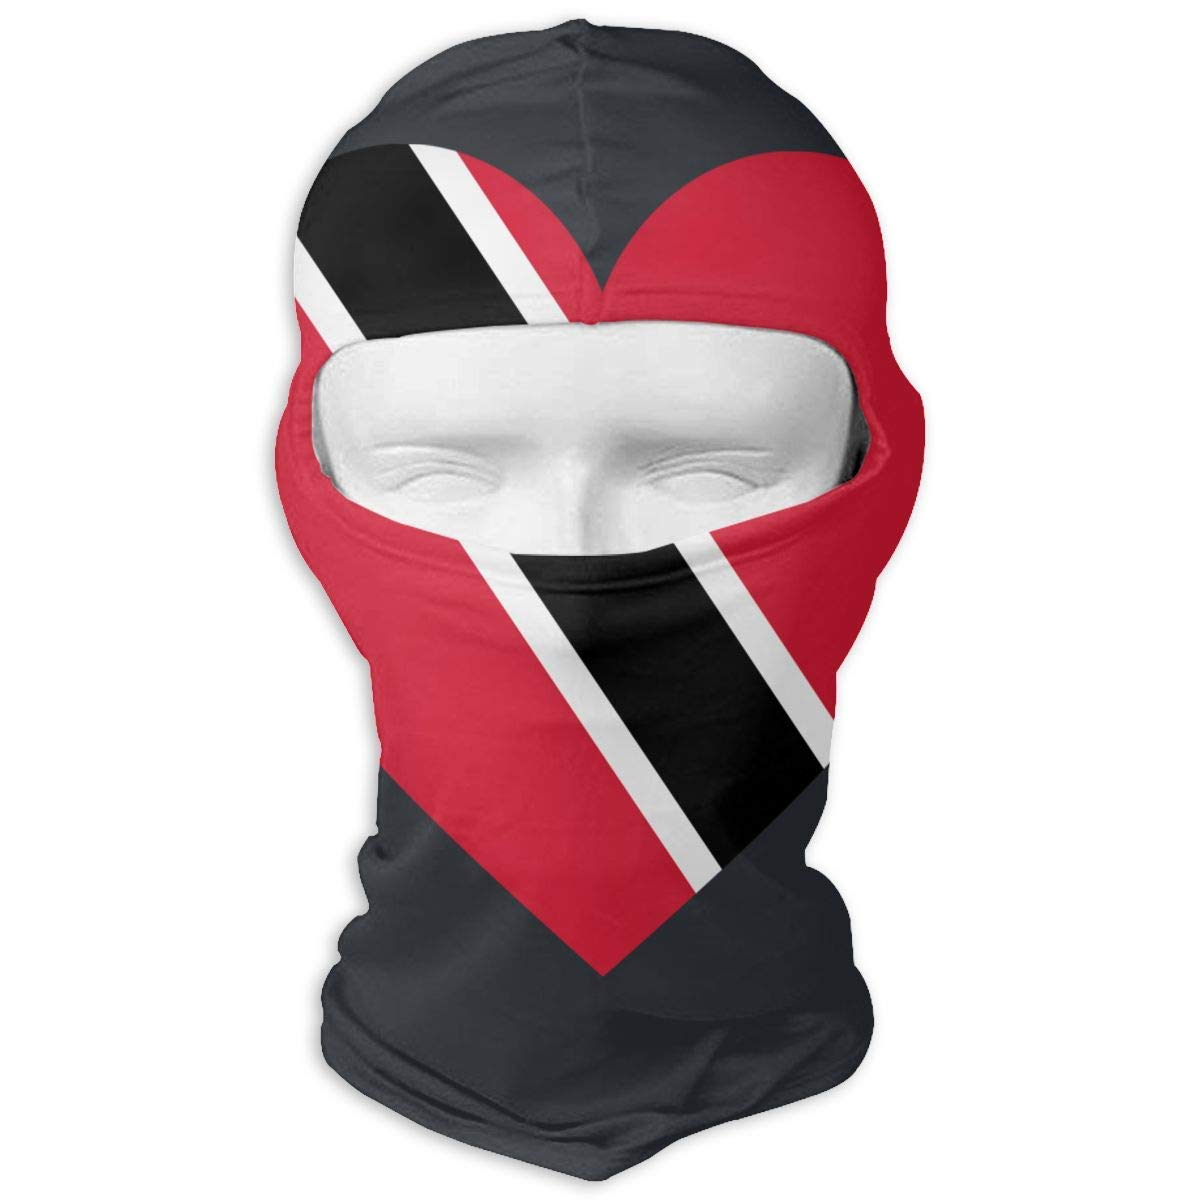 Xdevrbk Love Trinidad and Tobago Flag Ski Mask Sun UV Protection Dust Protection Wind-Resistant Face Mask for Running Cycling Fishing Multicolor4